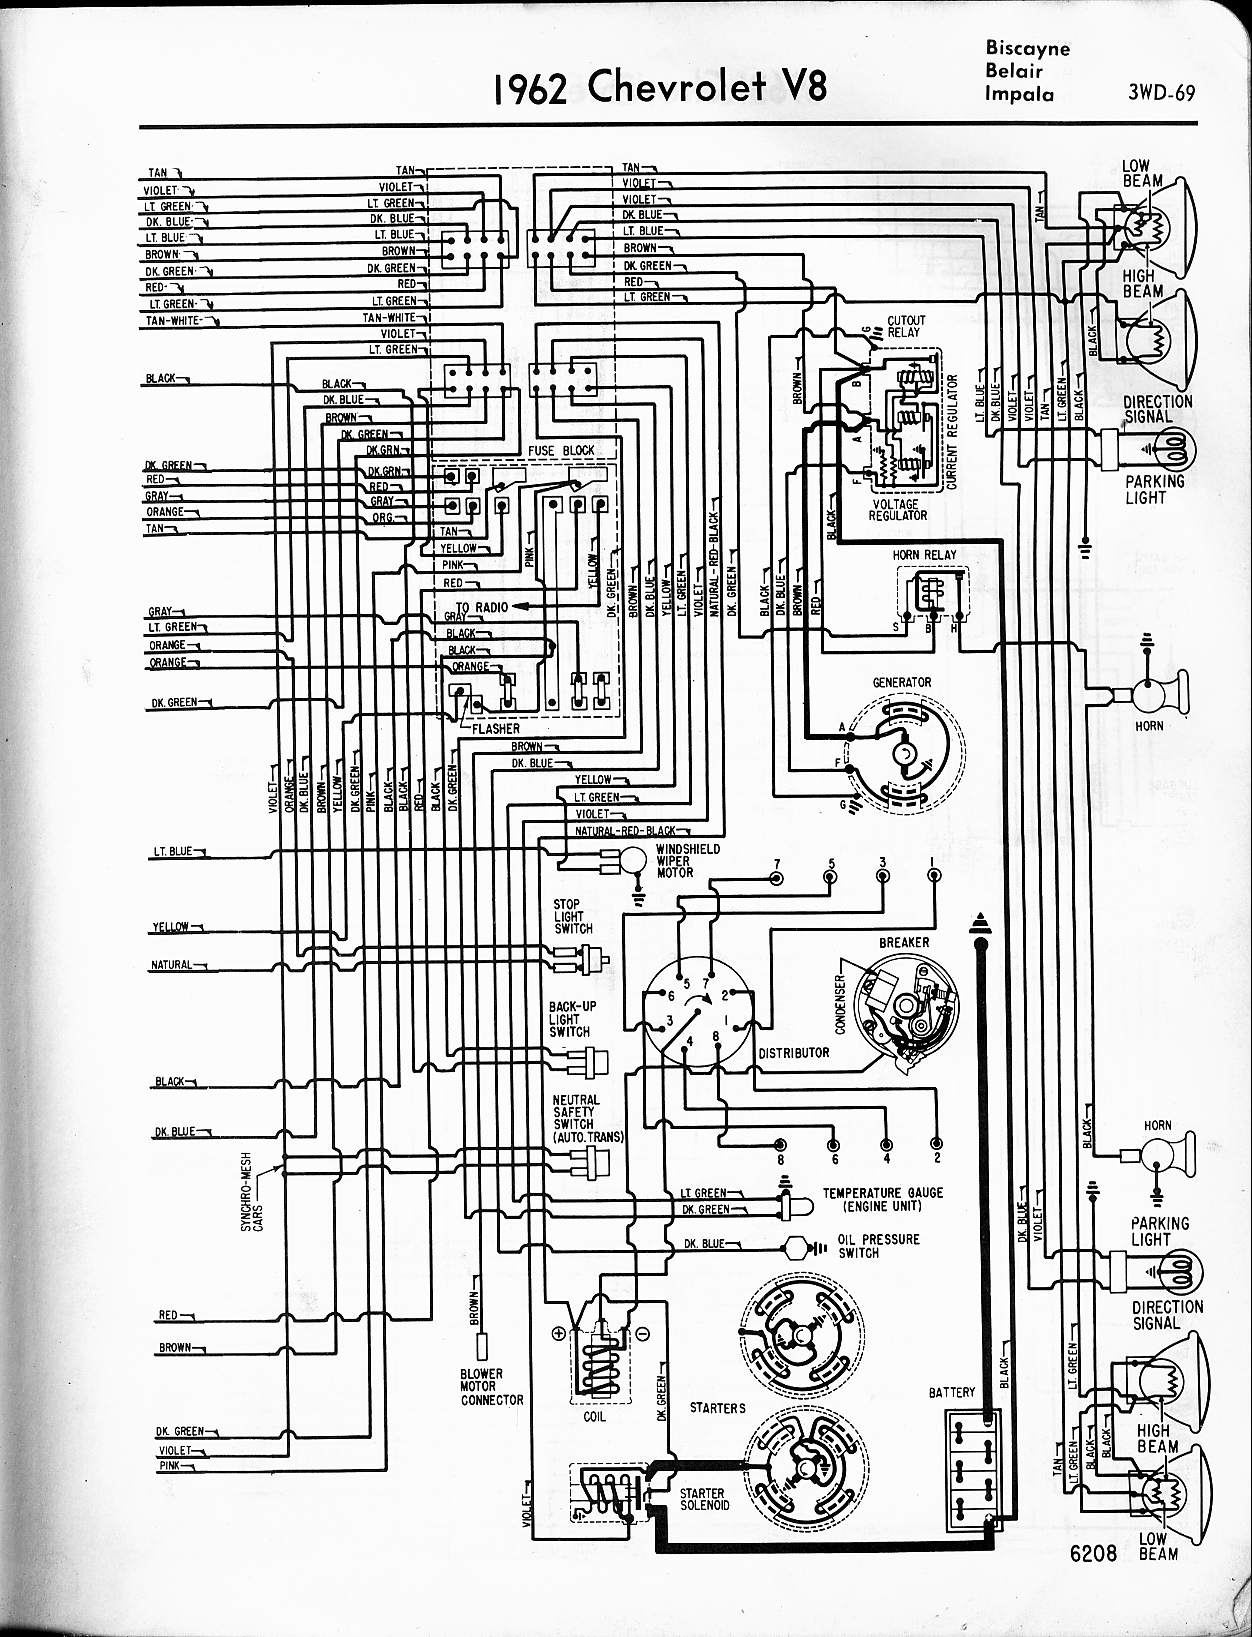 hight resolution of 57 65 chevy wiring diagrams 12 volt starter wiring diagram 1962 v8 biscayne belair